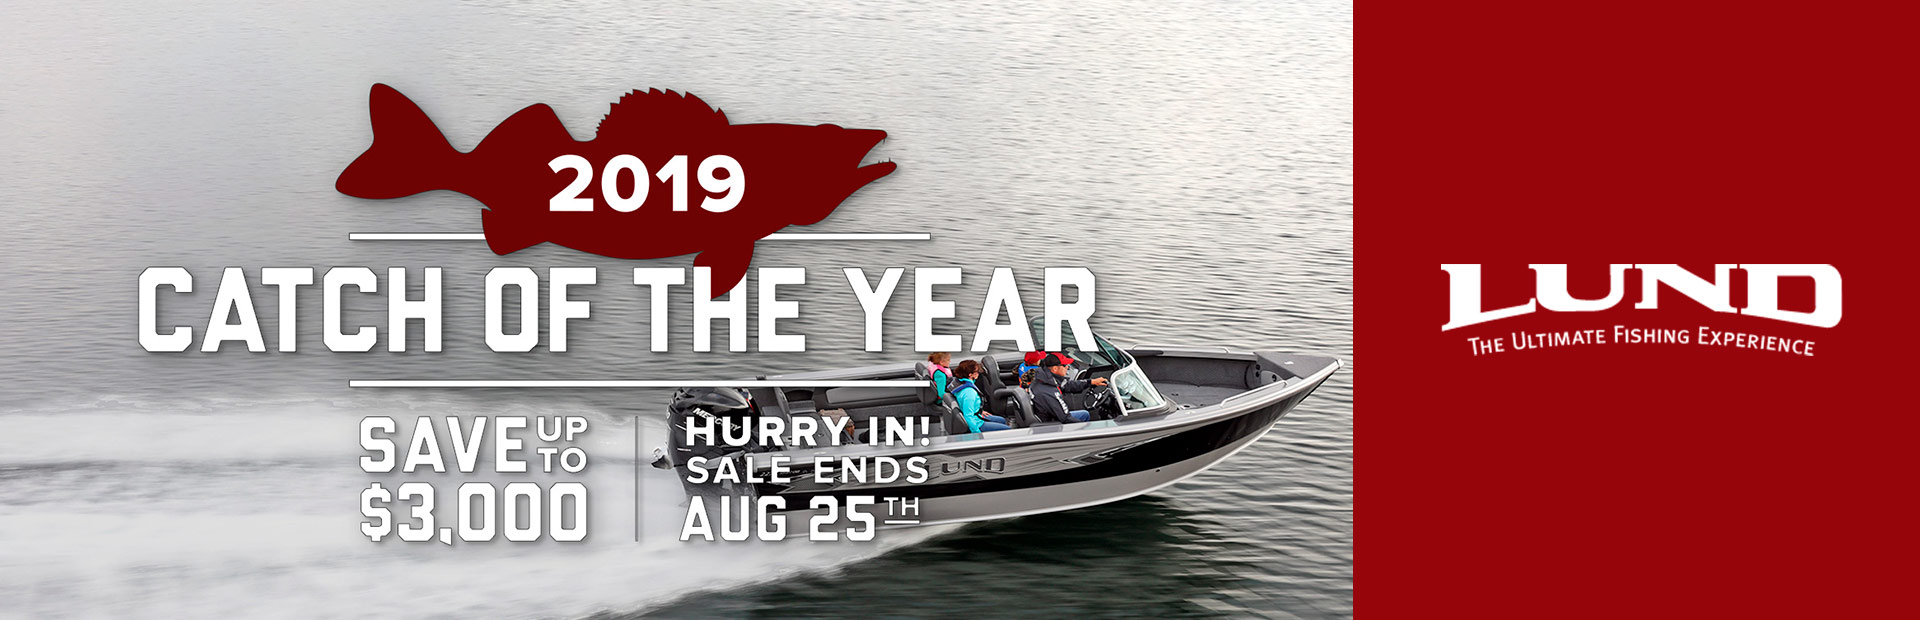 Lund - 2019 Catch Of The Year Ray's Sport & Marine Grand